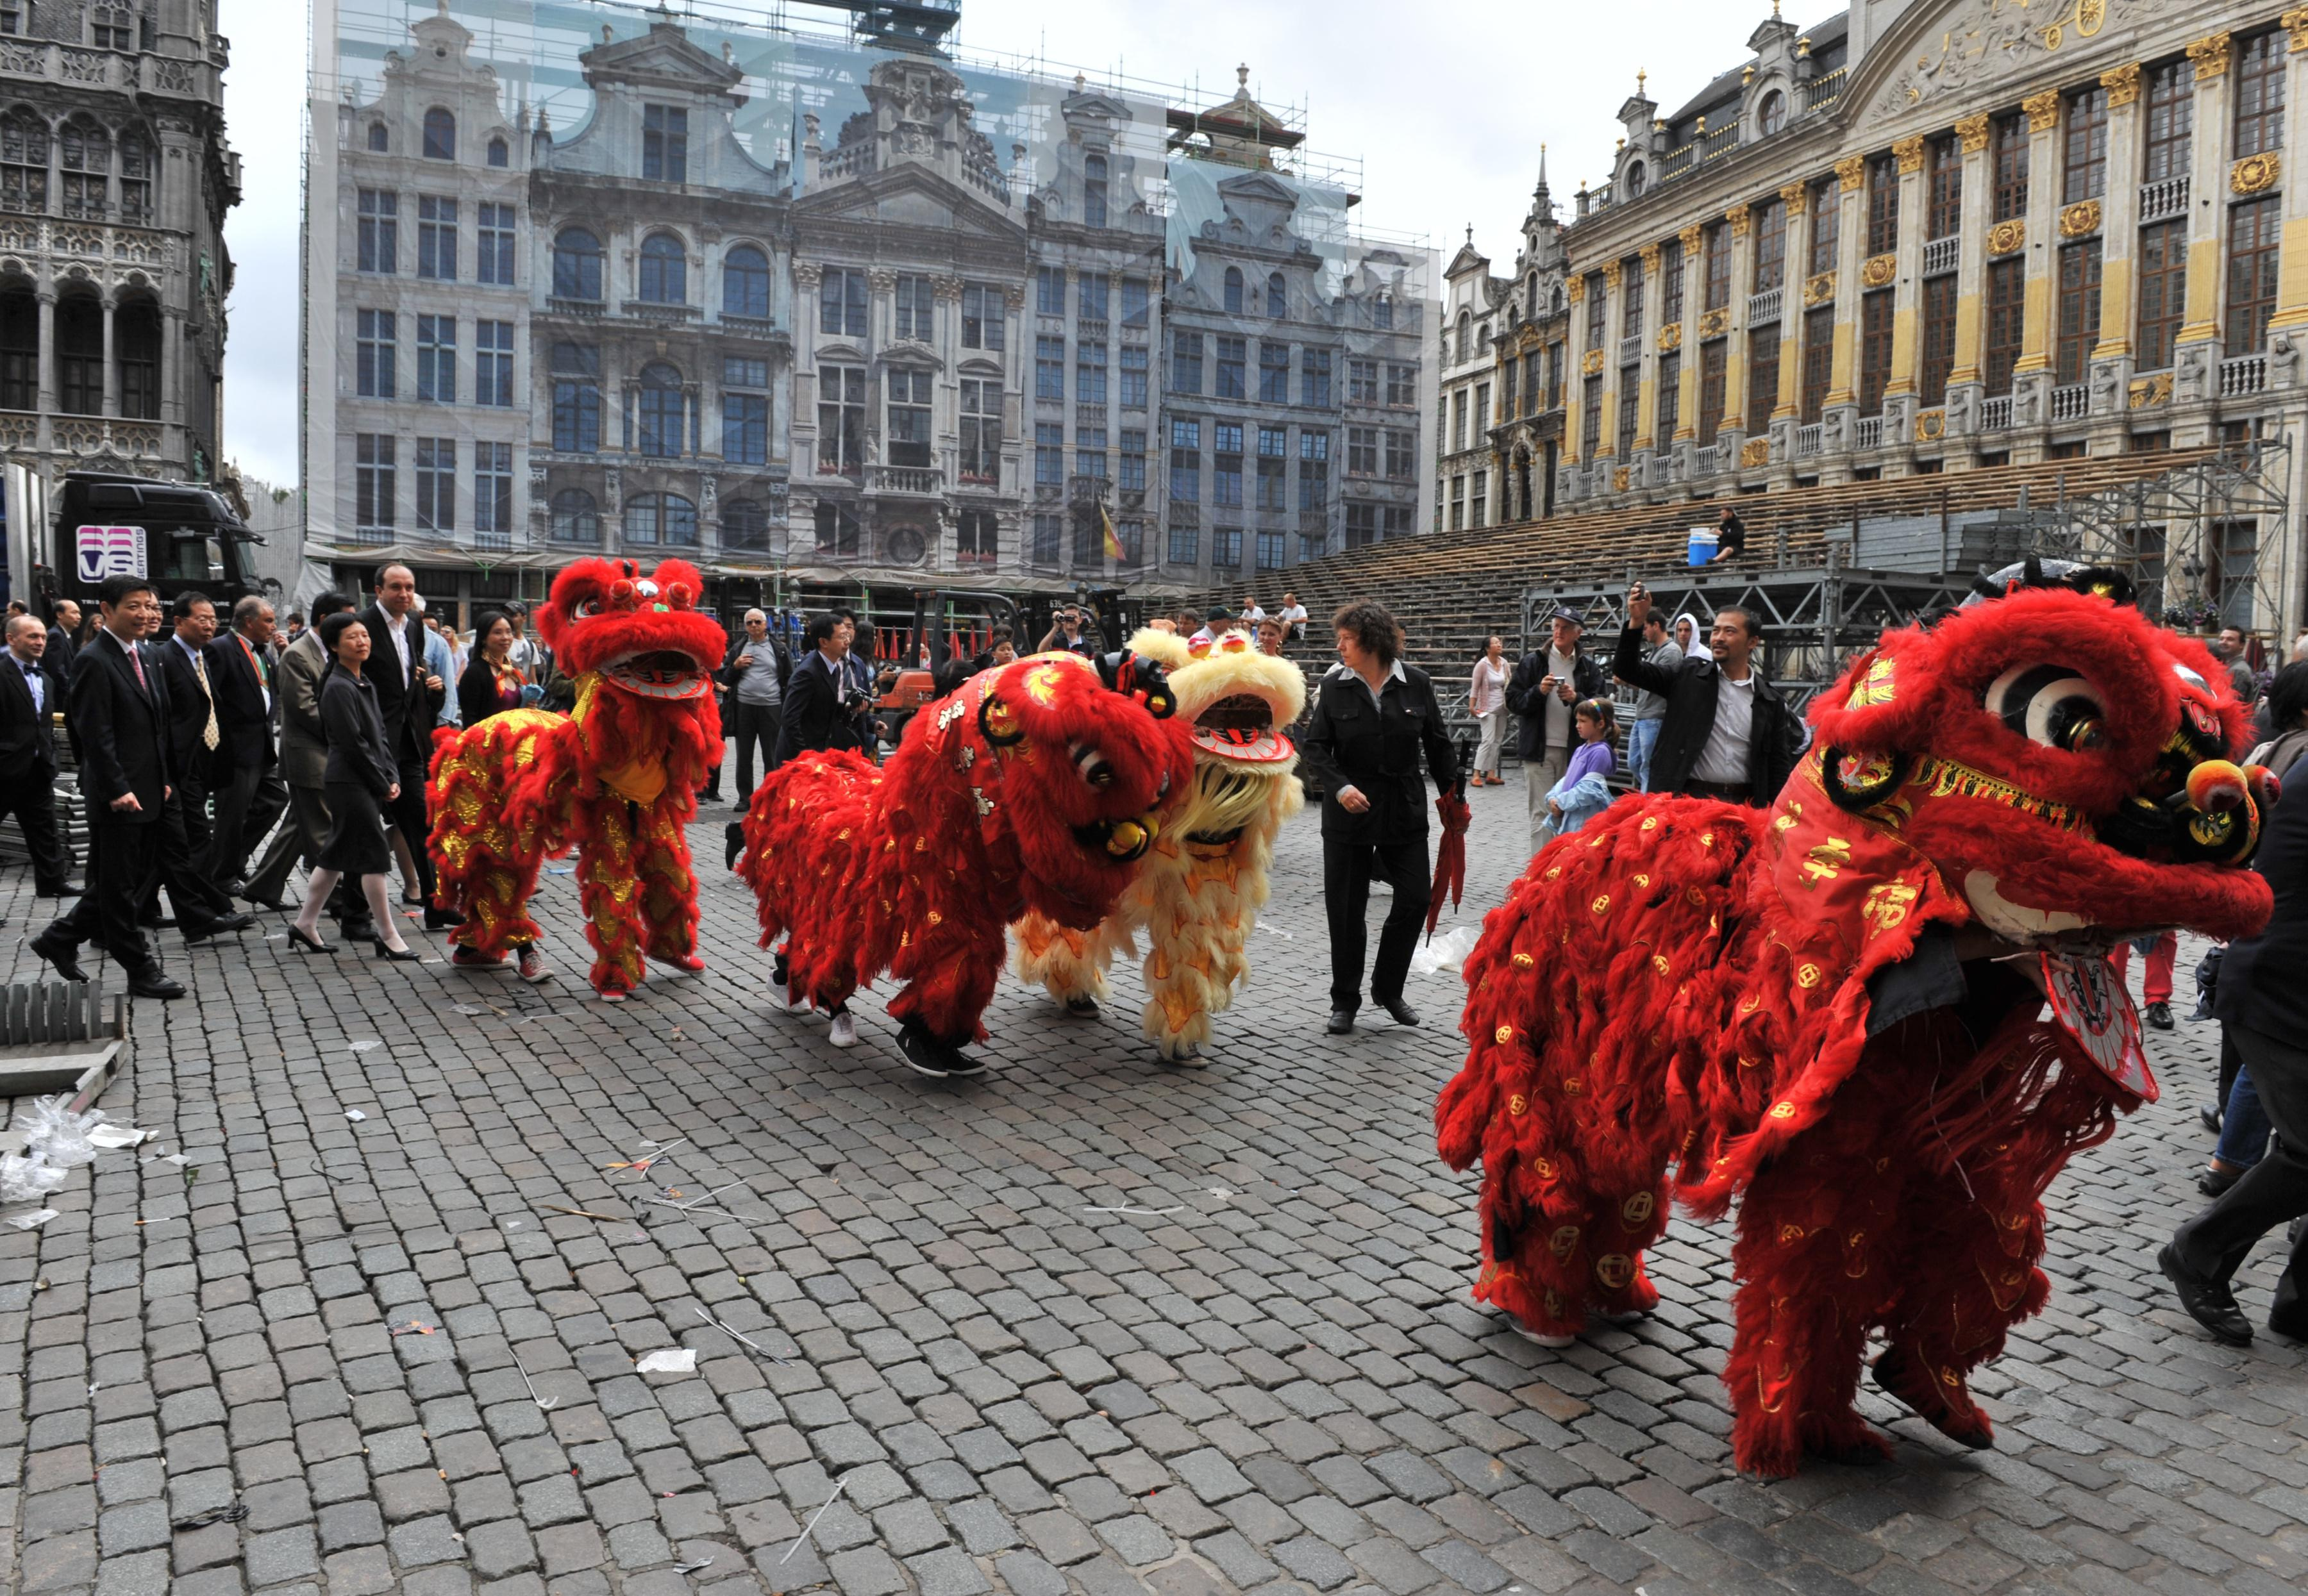 Chinese lions open the way on July 6, 2012, on the Grand Place in Brussels, to Belgian and Chinese personalities, heading to attend a ceremony at the nearby famous Manneken-Pis fountain.